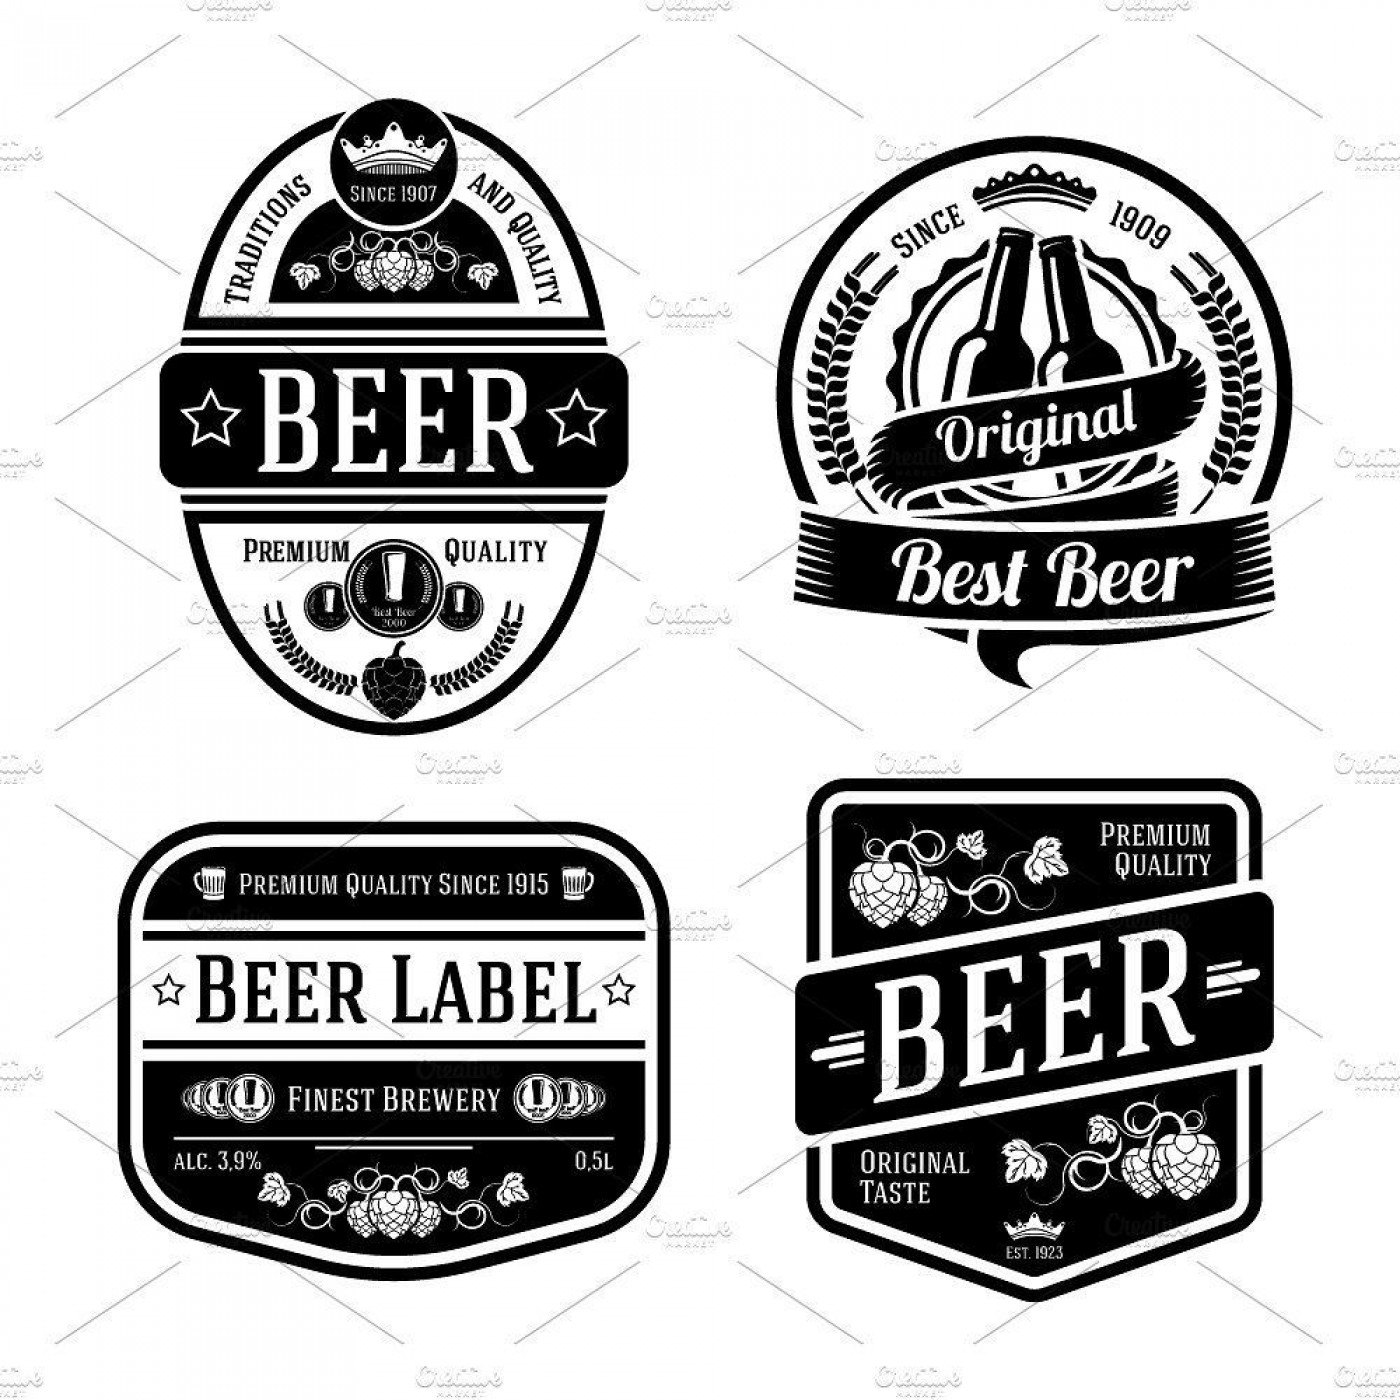 000 Wonderful Beer Label Design Template High Resolution  Free1400